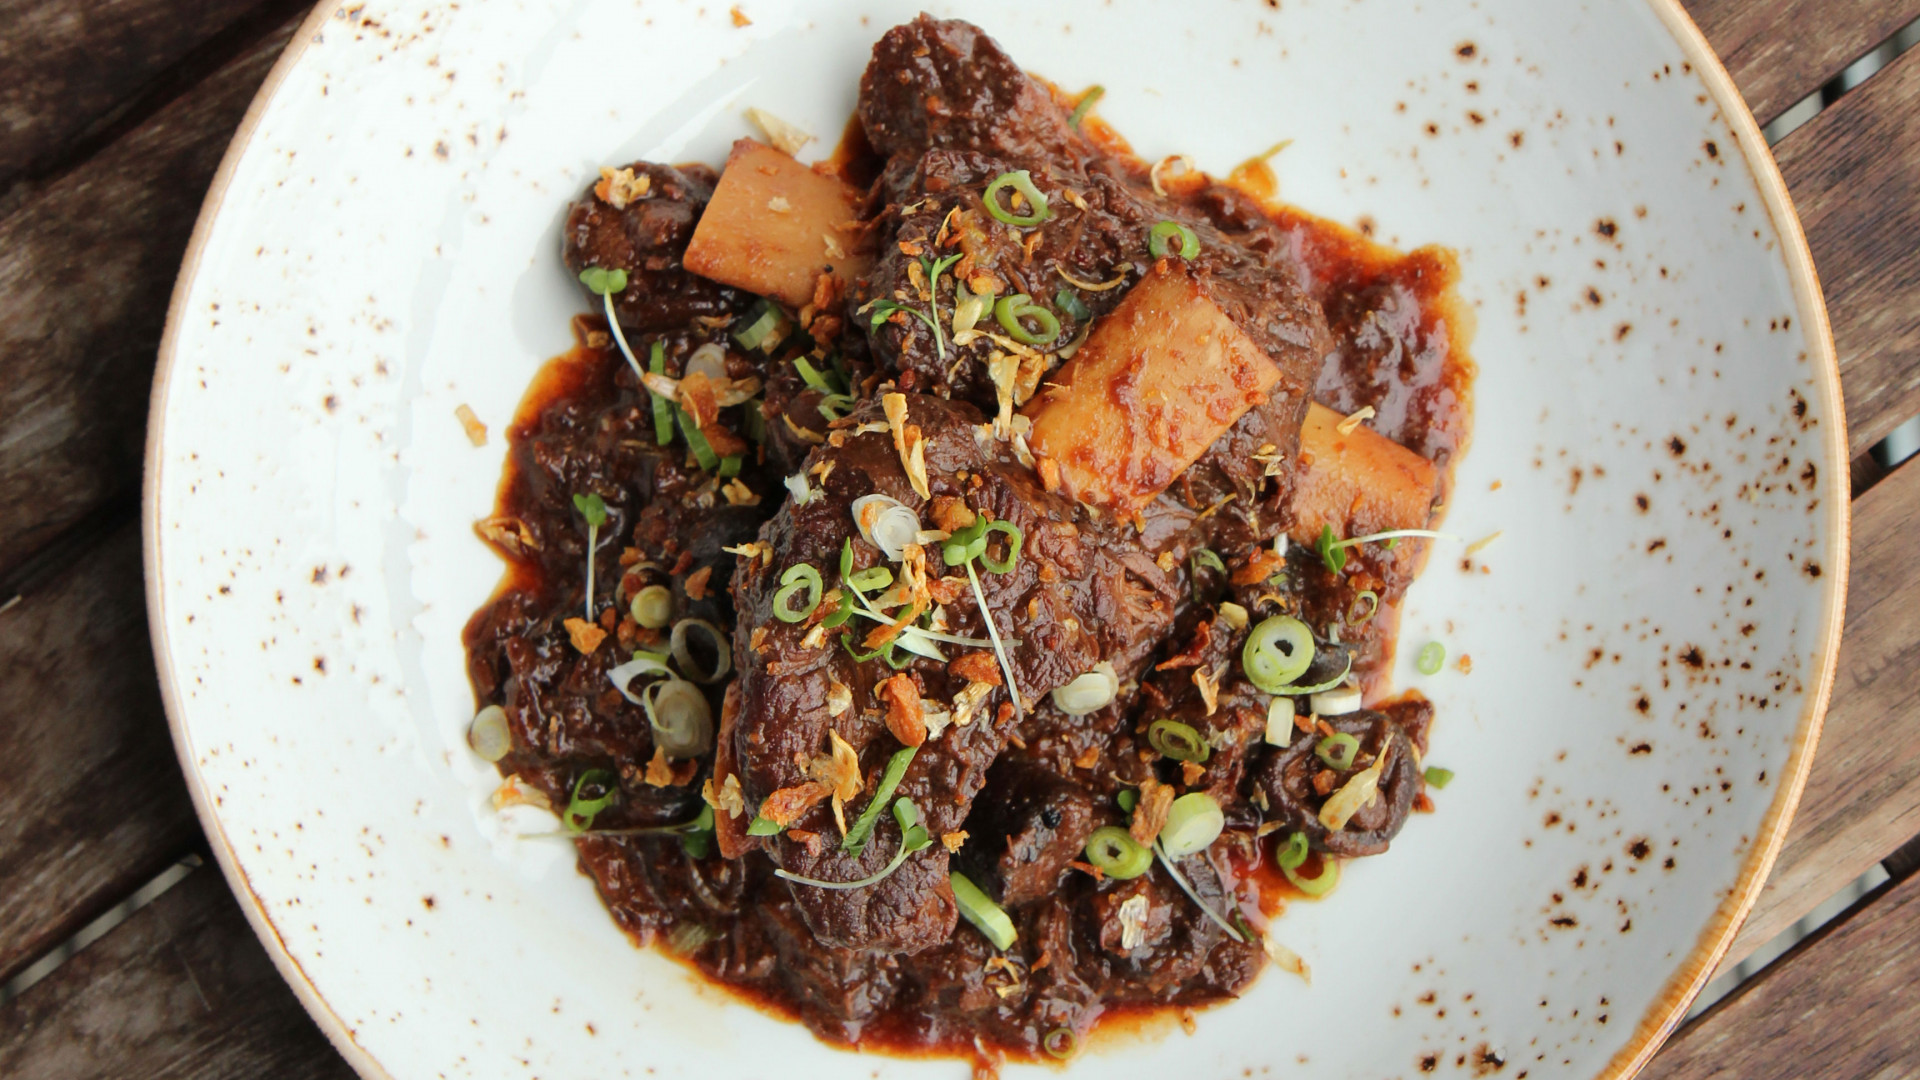 Shortrib beef pongteh